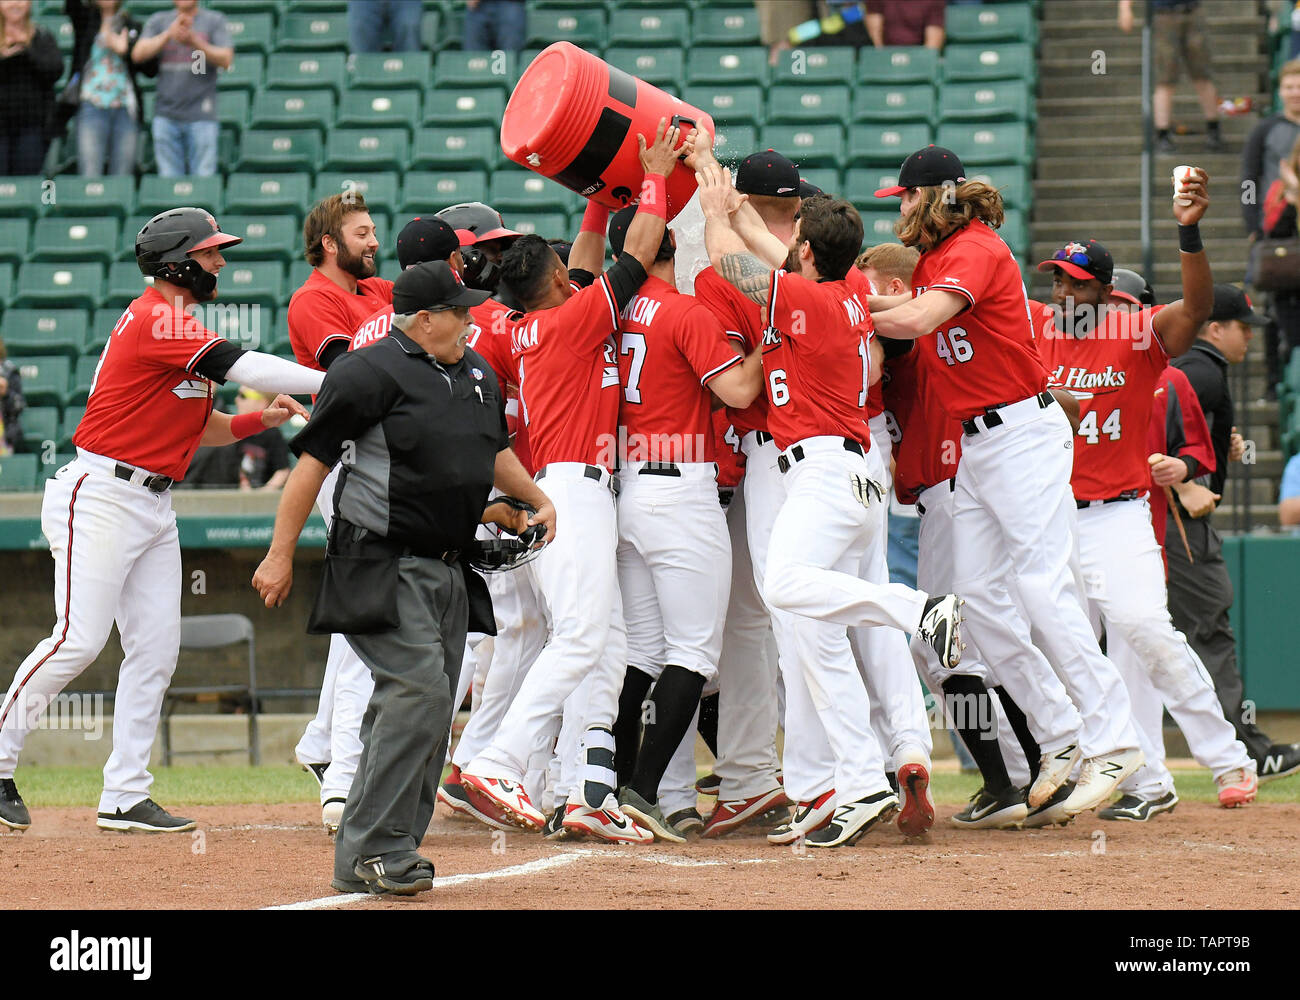 Fargo, ND, USA  26th May, 2019  Redhawks players celebrate